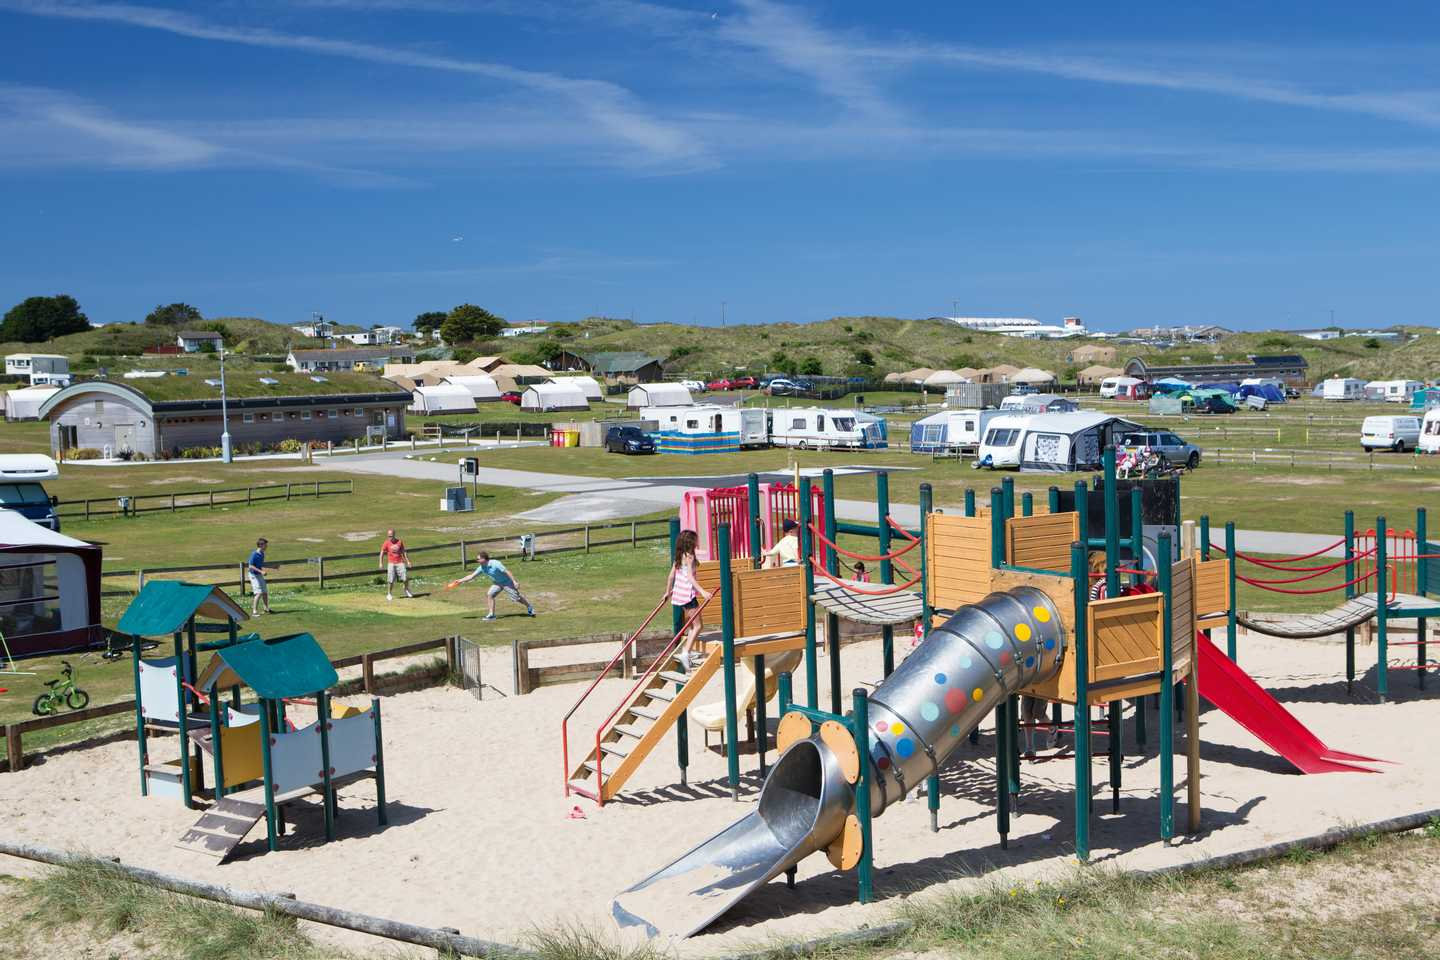 The outdoor play area at Perran Sands